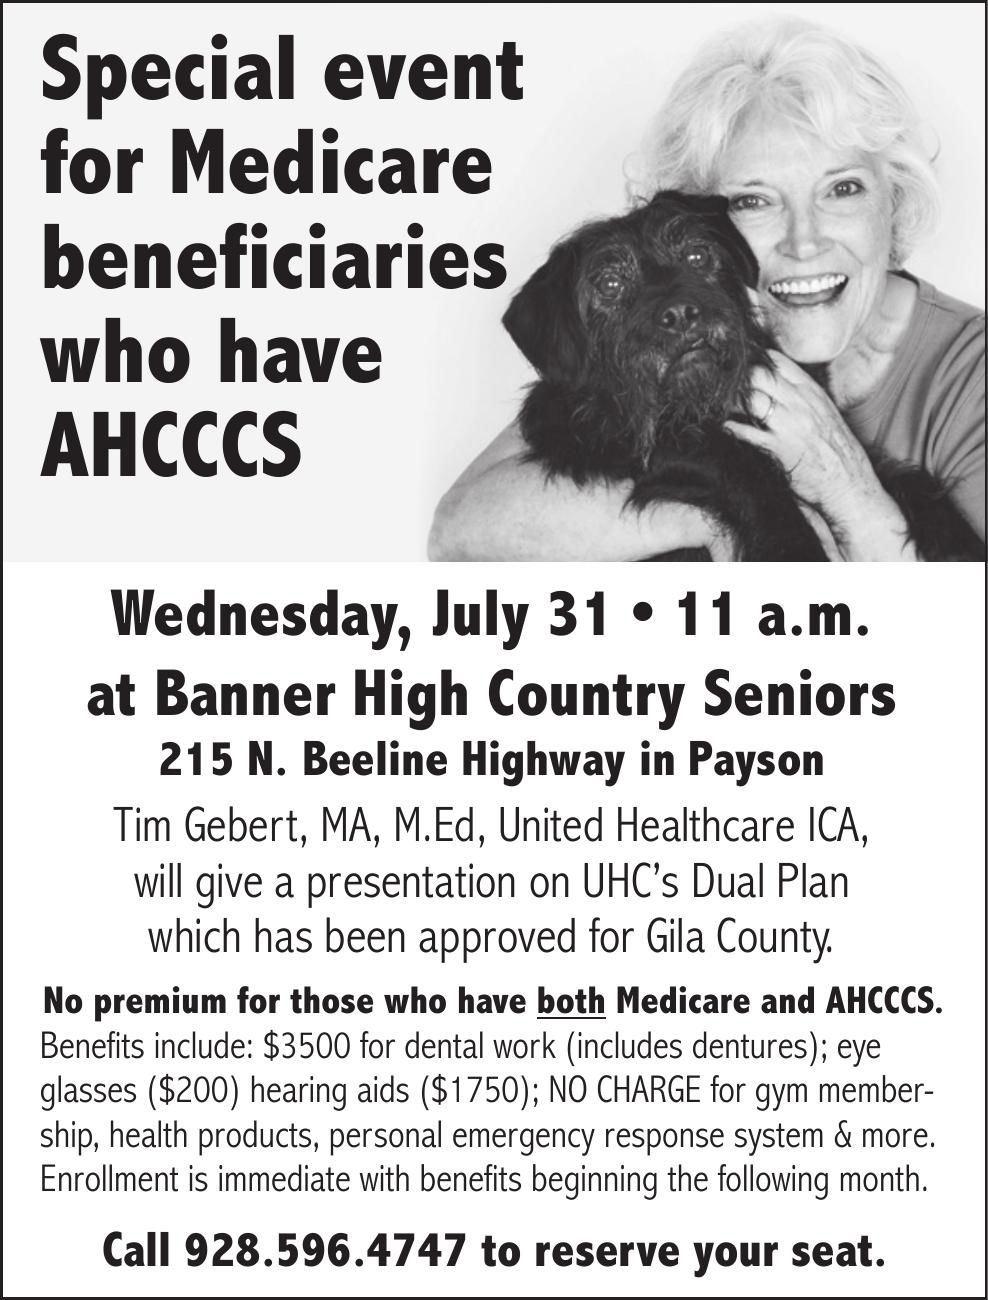 Attn: Medicare beneficiaries with AHCCCS